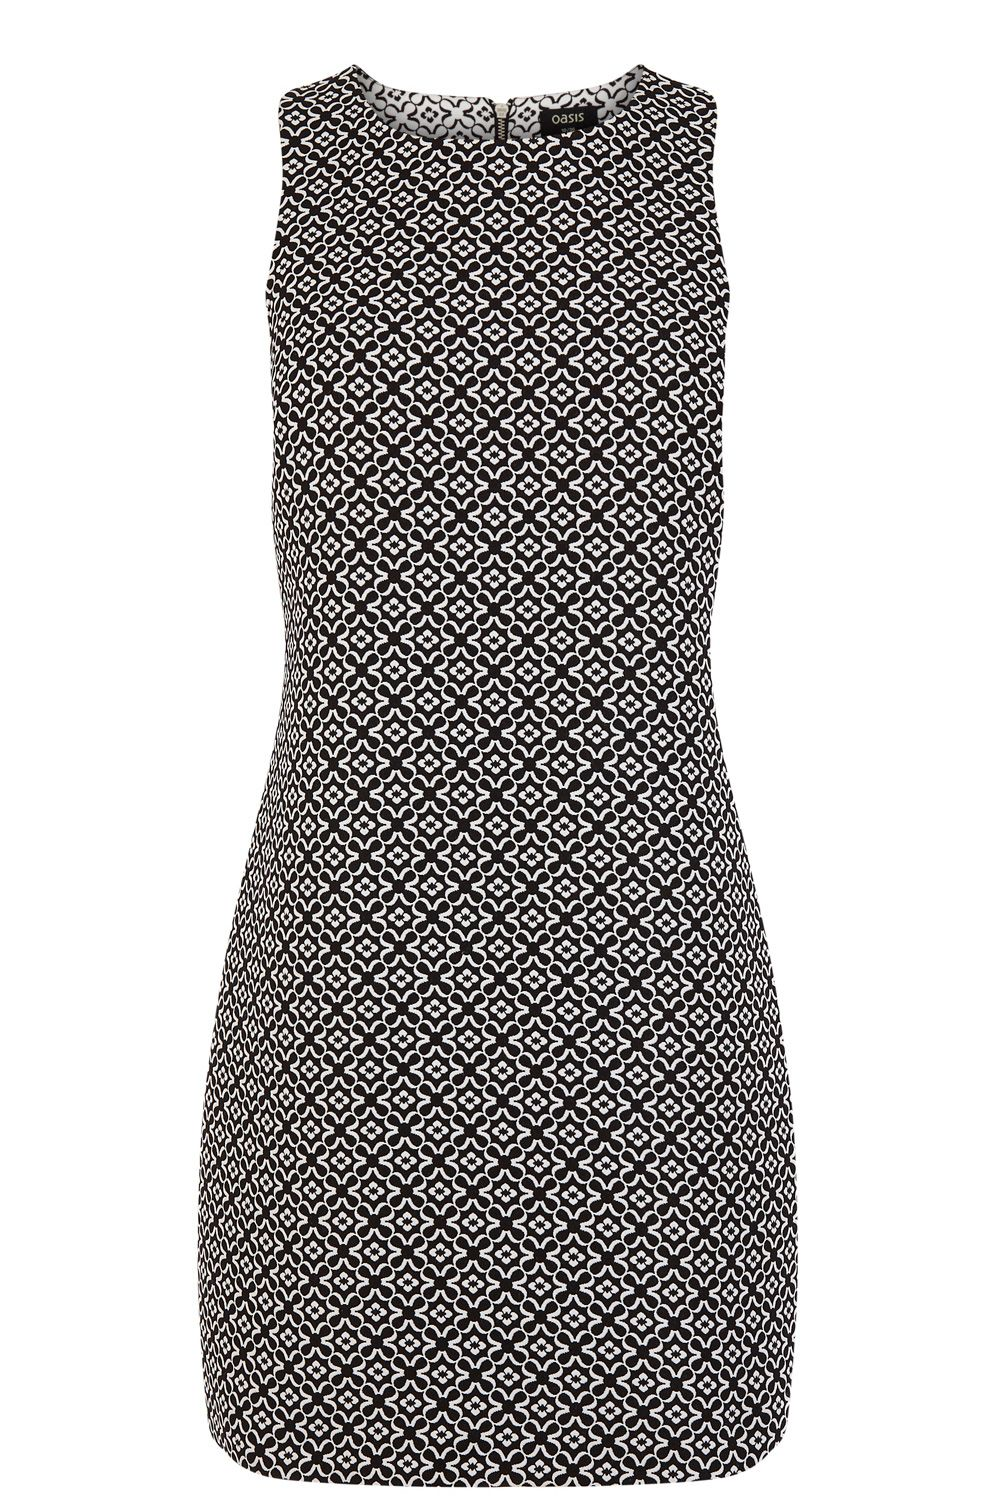 Joy jacquard zip dress